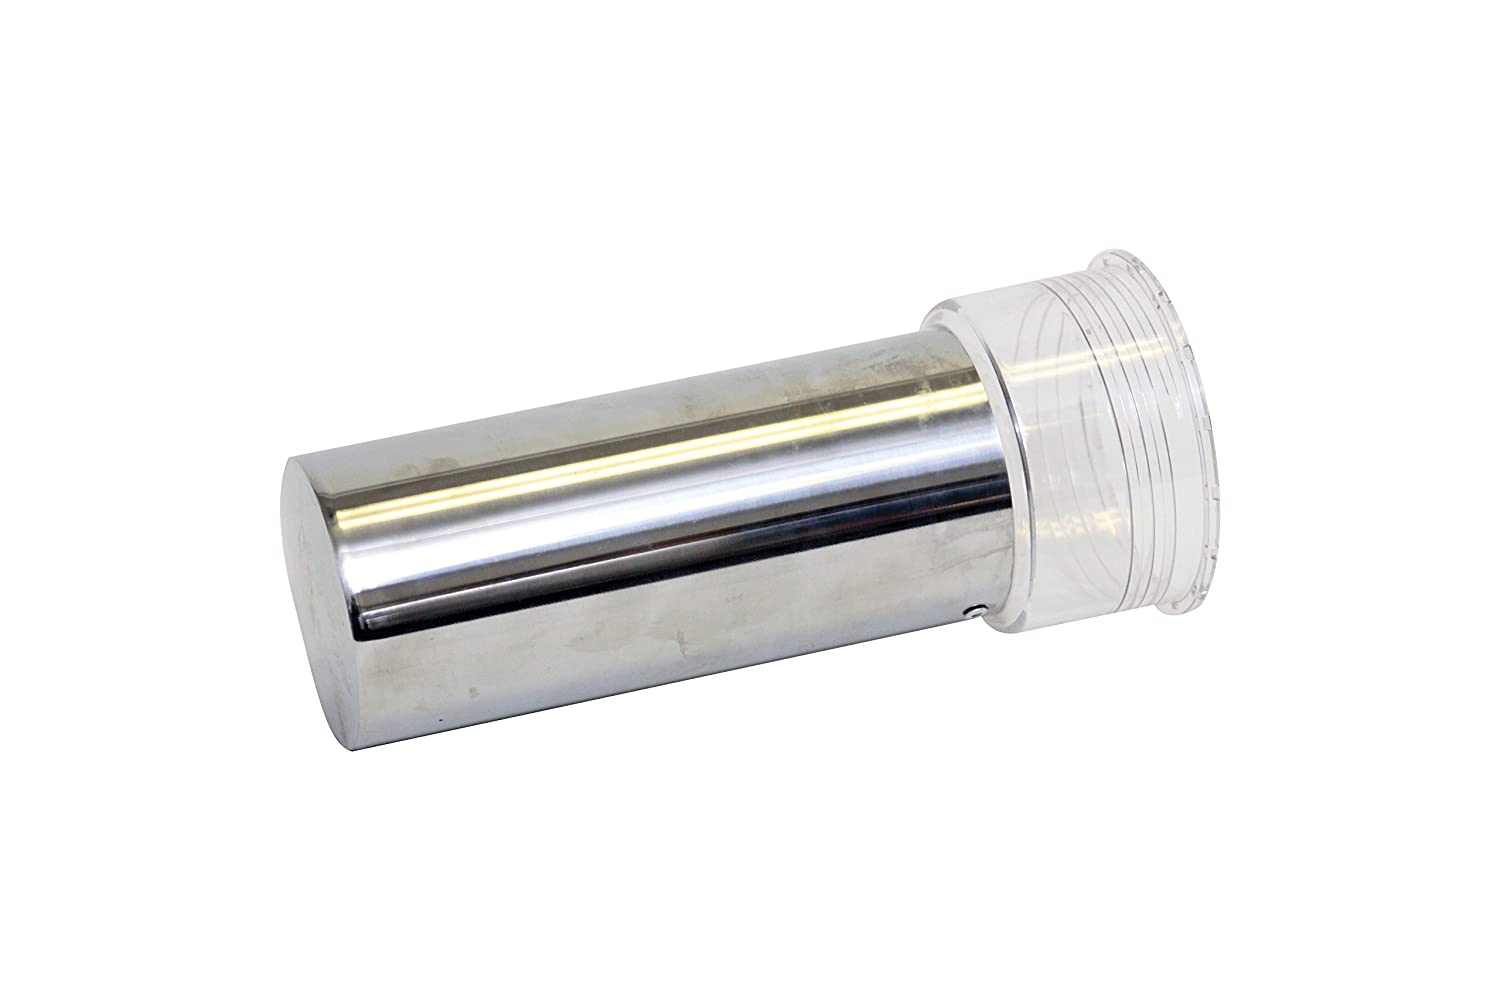 Beer Tubes 128 oz. Super Tube Ice Tube Cooling Accessory, Steel, Silver, (ITST )